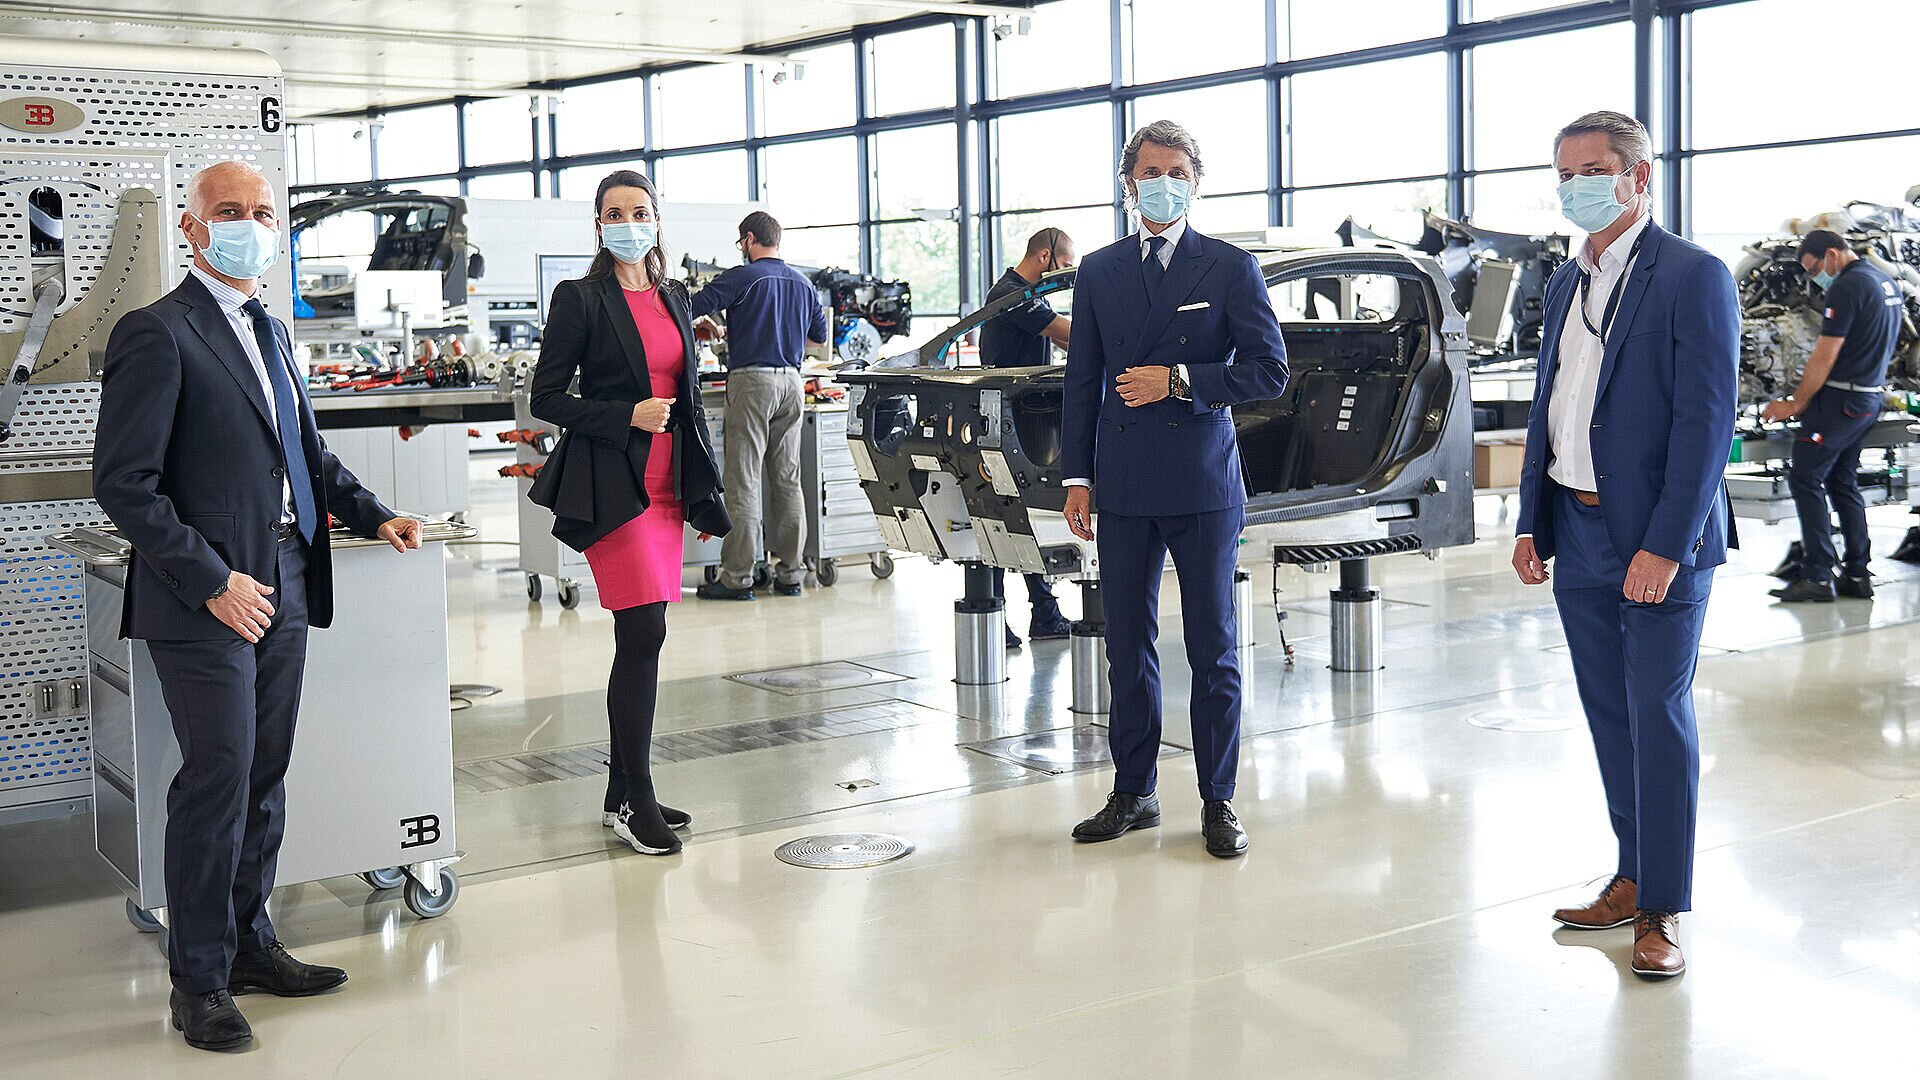 Covid-19 pandemic: Bugatti restarts production in the workshop - Image 1